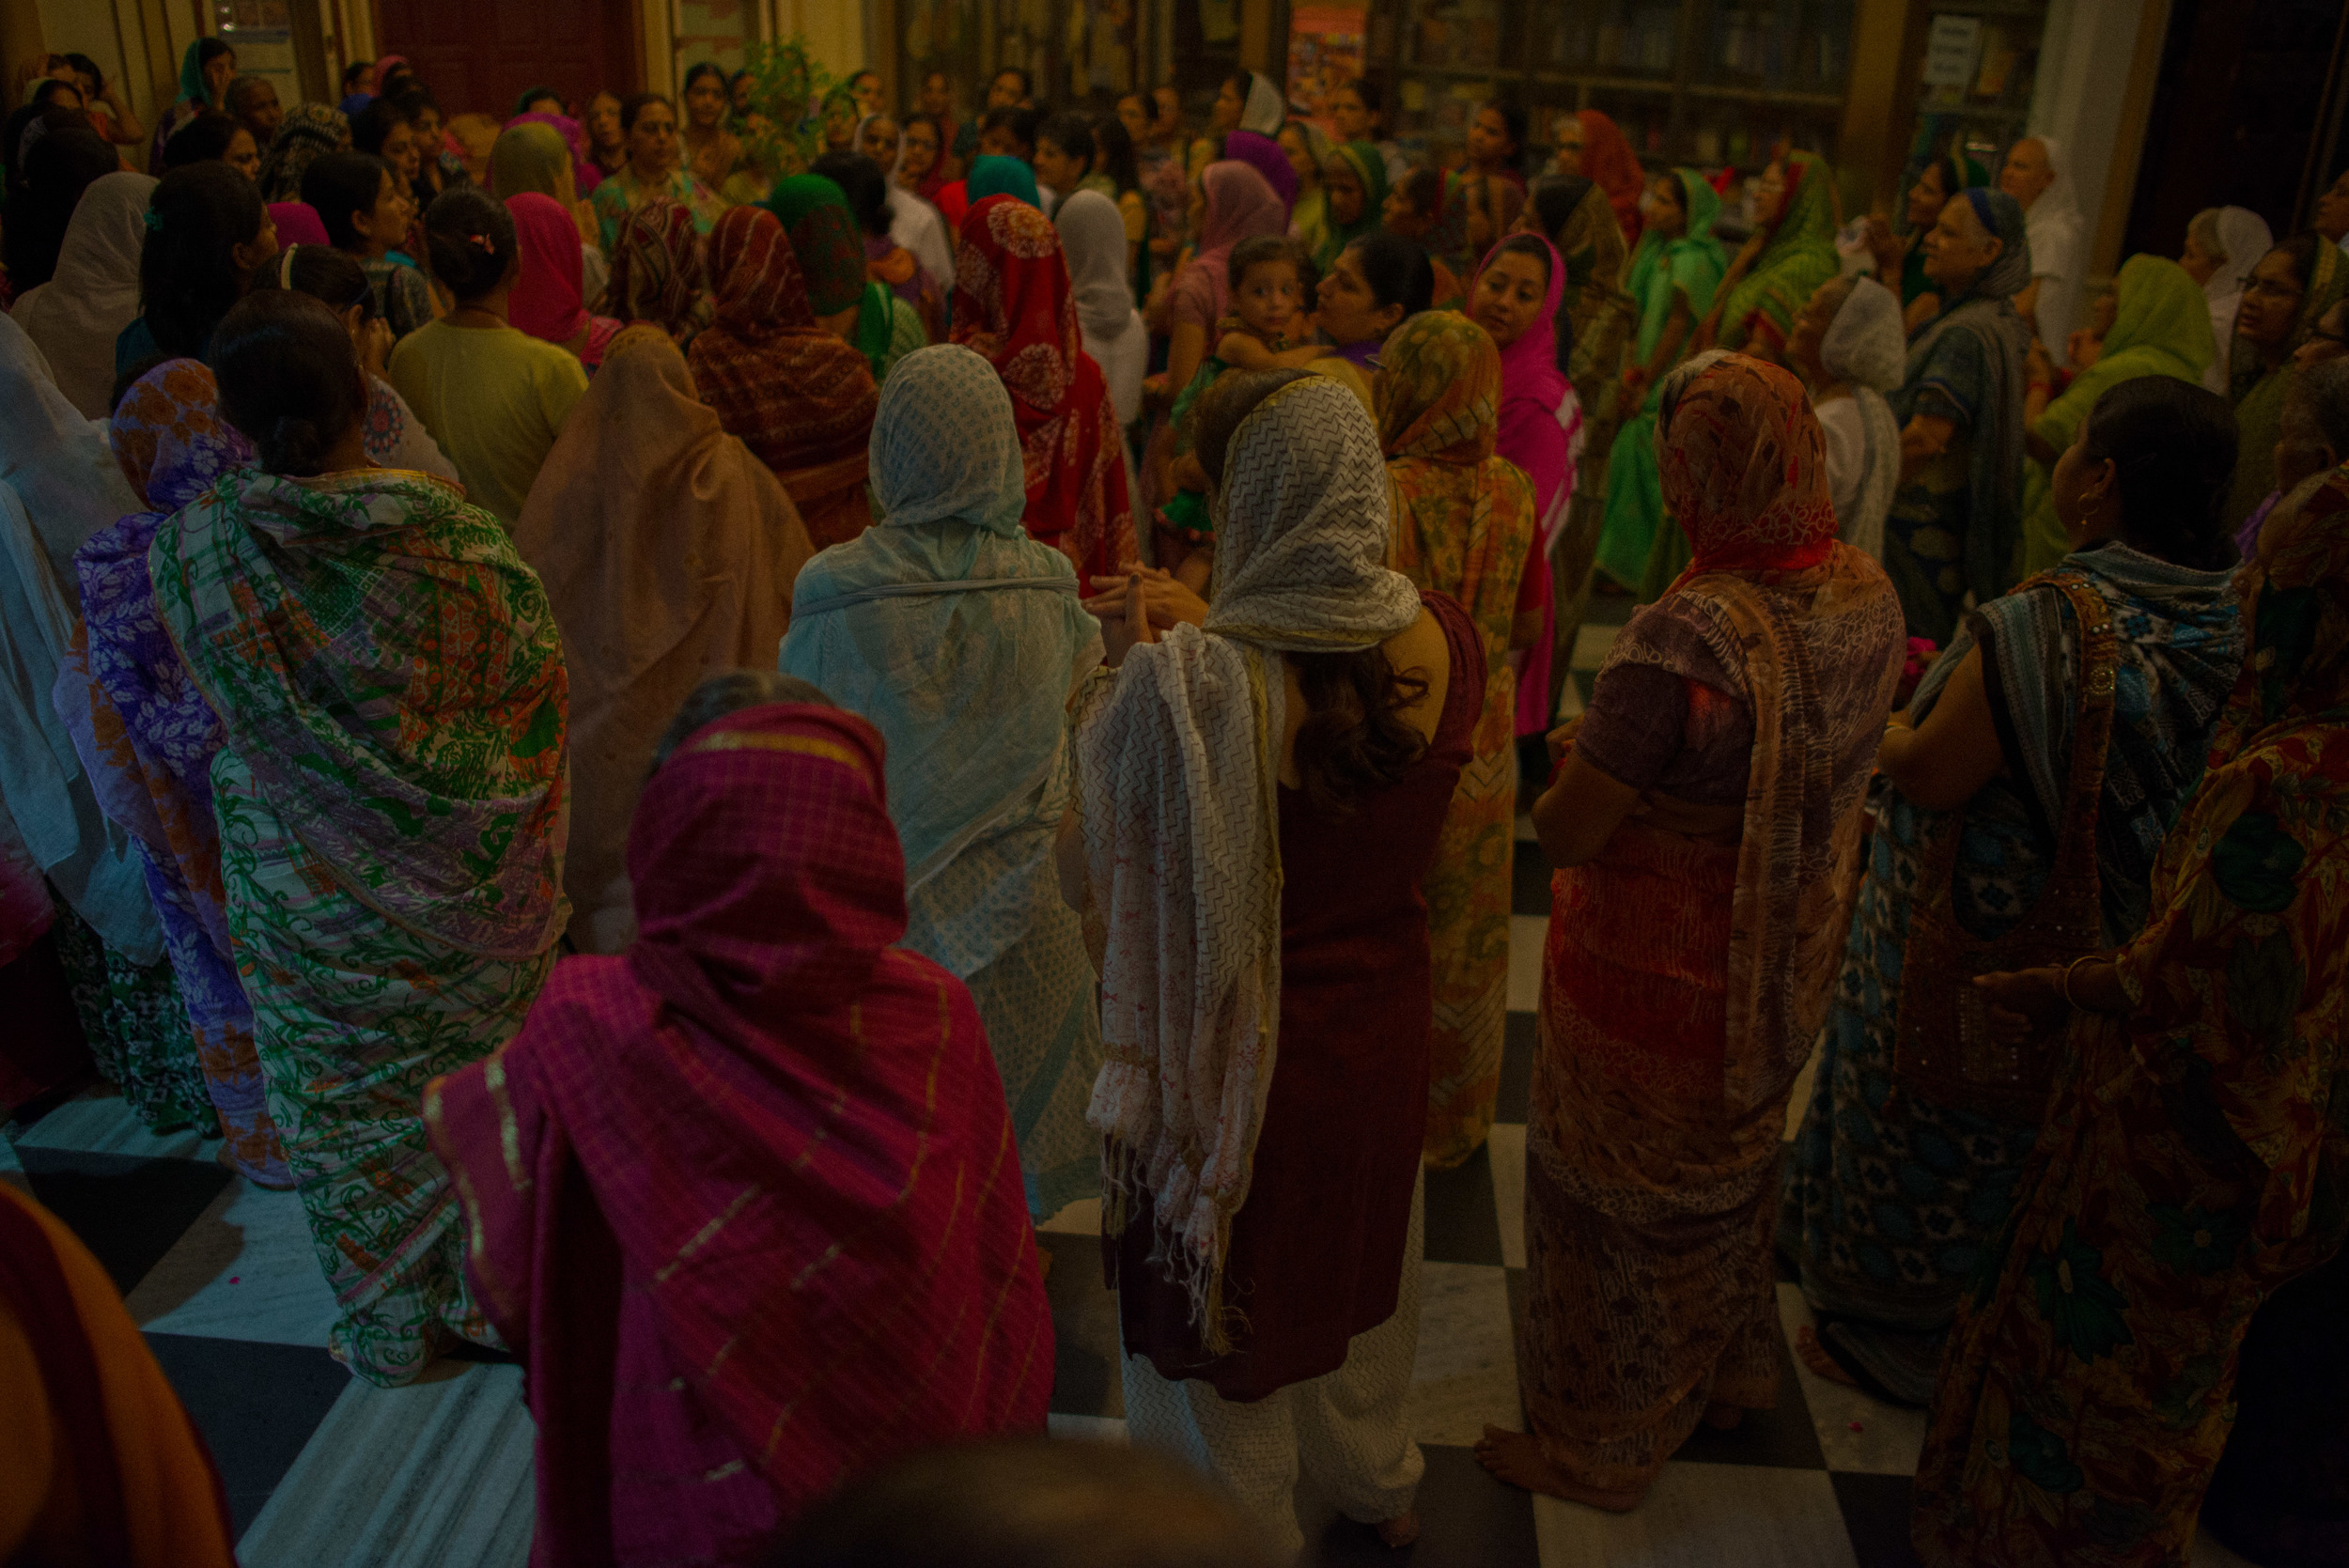 The women of ISKCON (also known as the Hare Krishna movement)